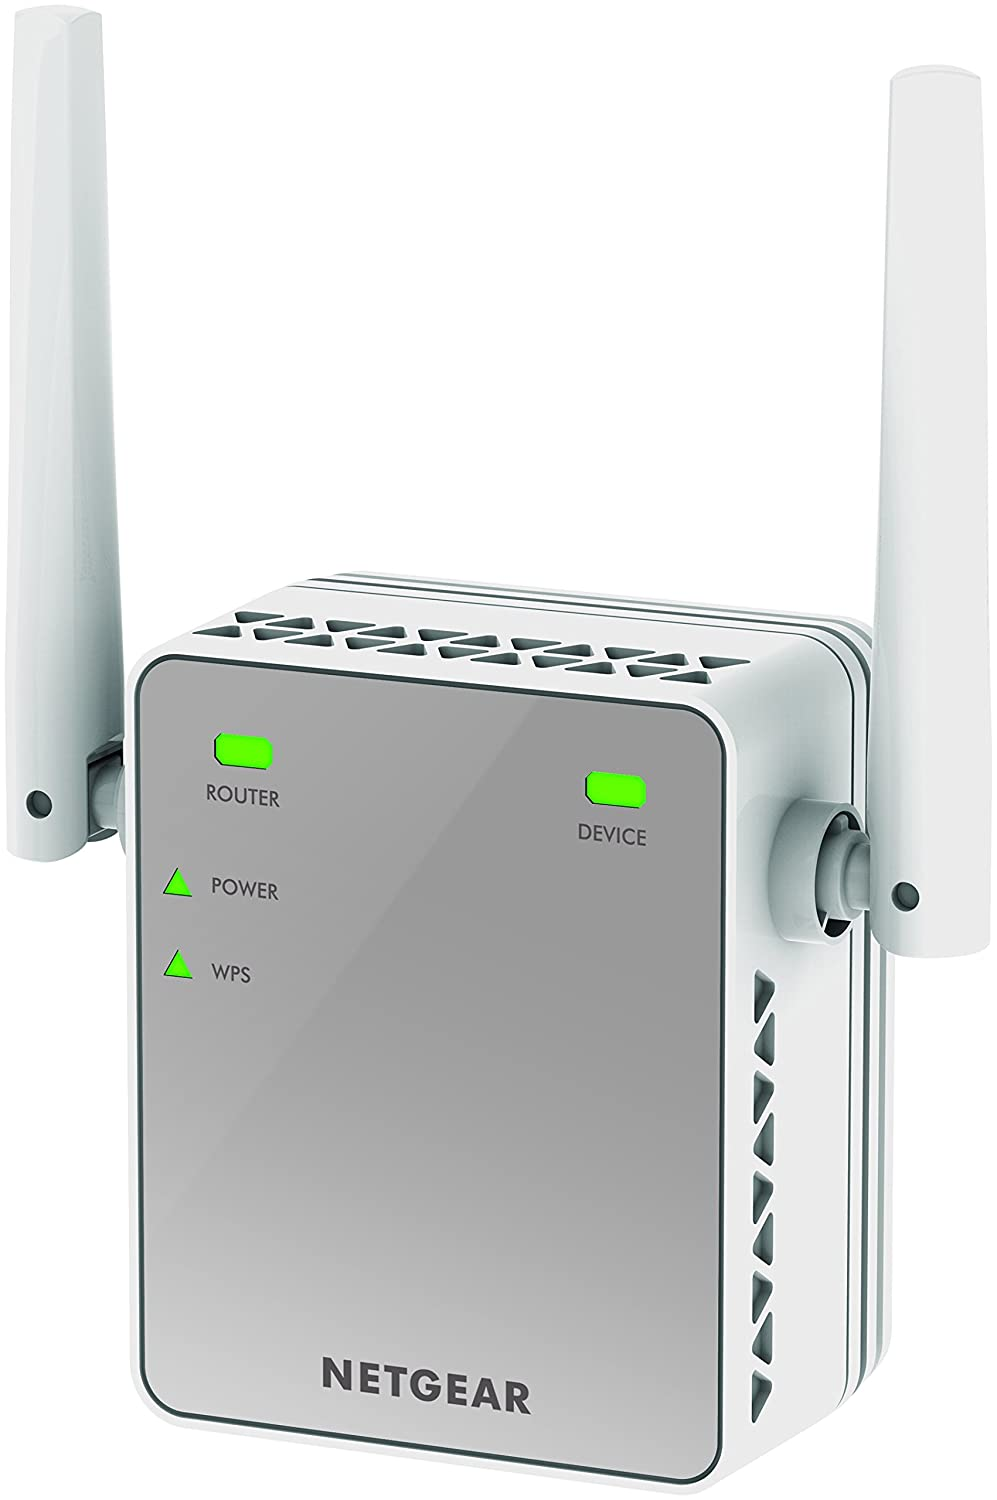 Netgear N300 Wifi Range Extender Ex2700 Computers Amplifier On So Do It Your Self Electronic Circuit Design Accessories